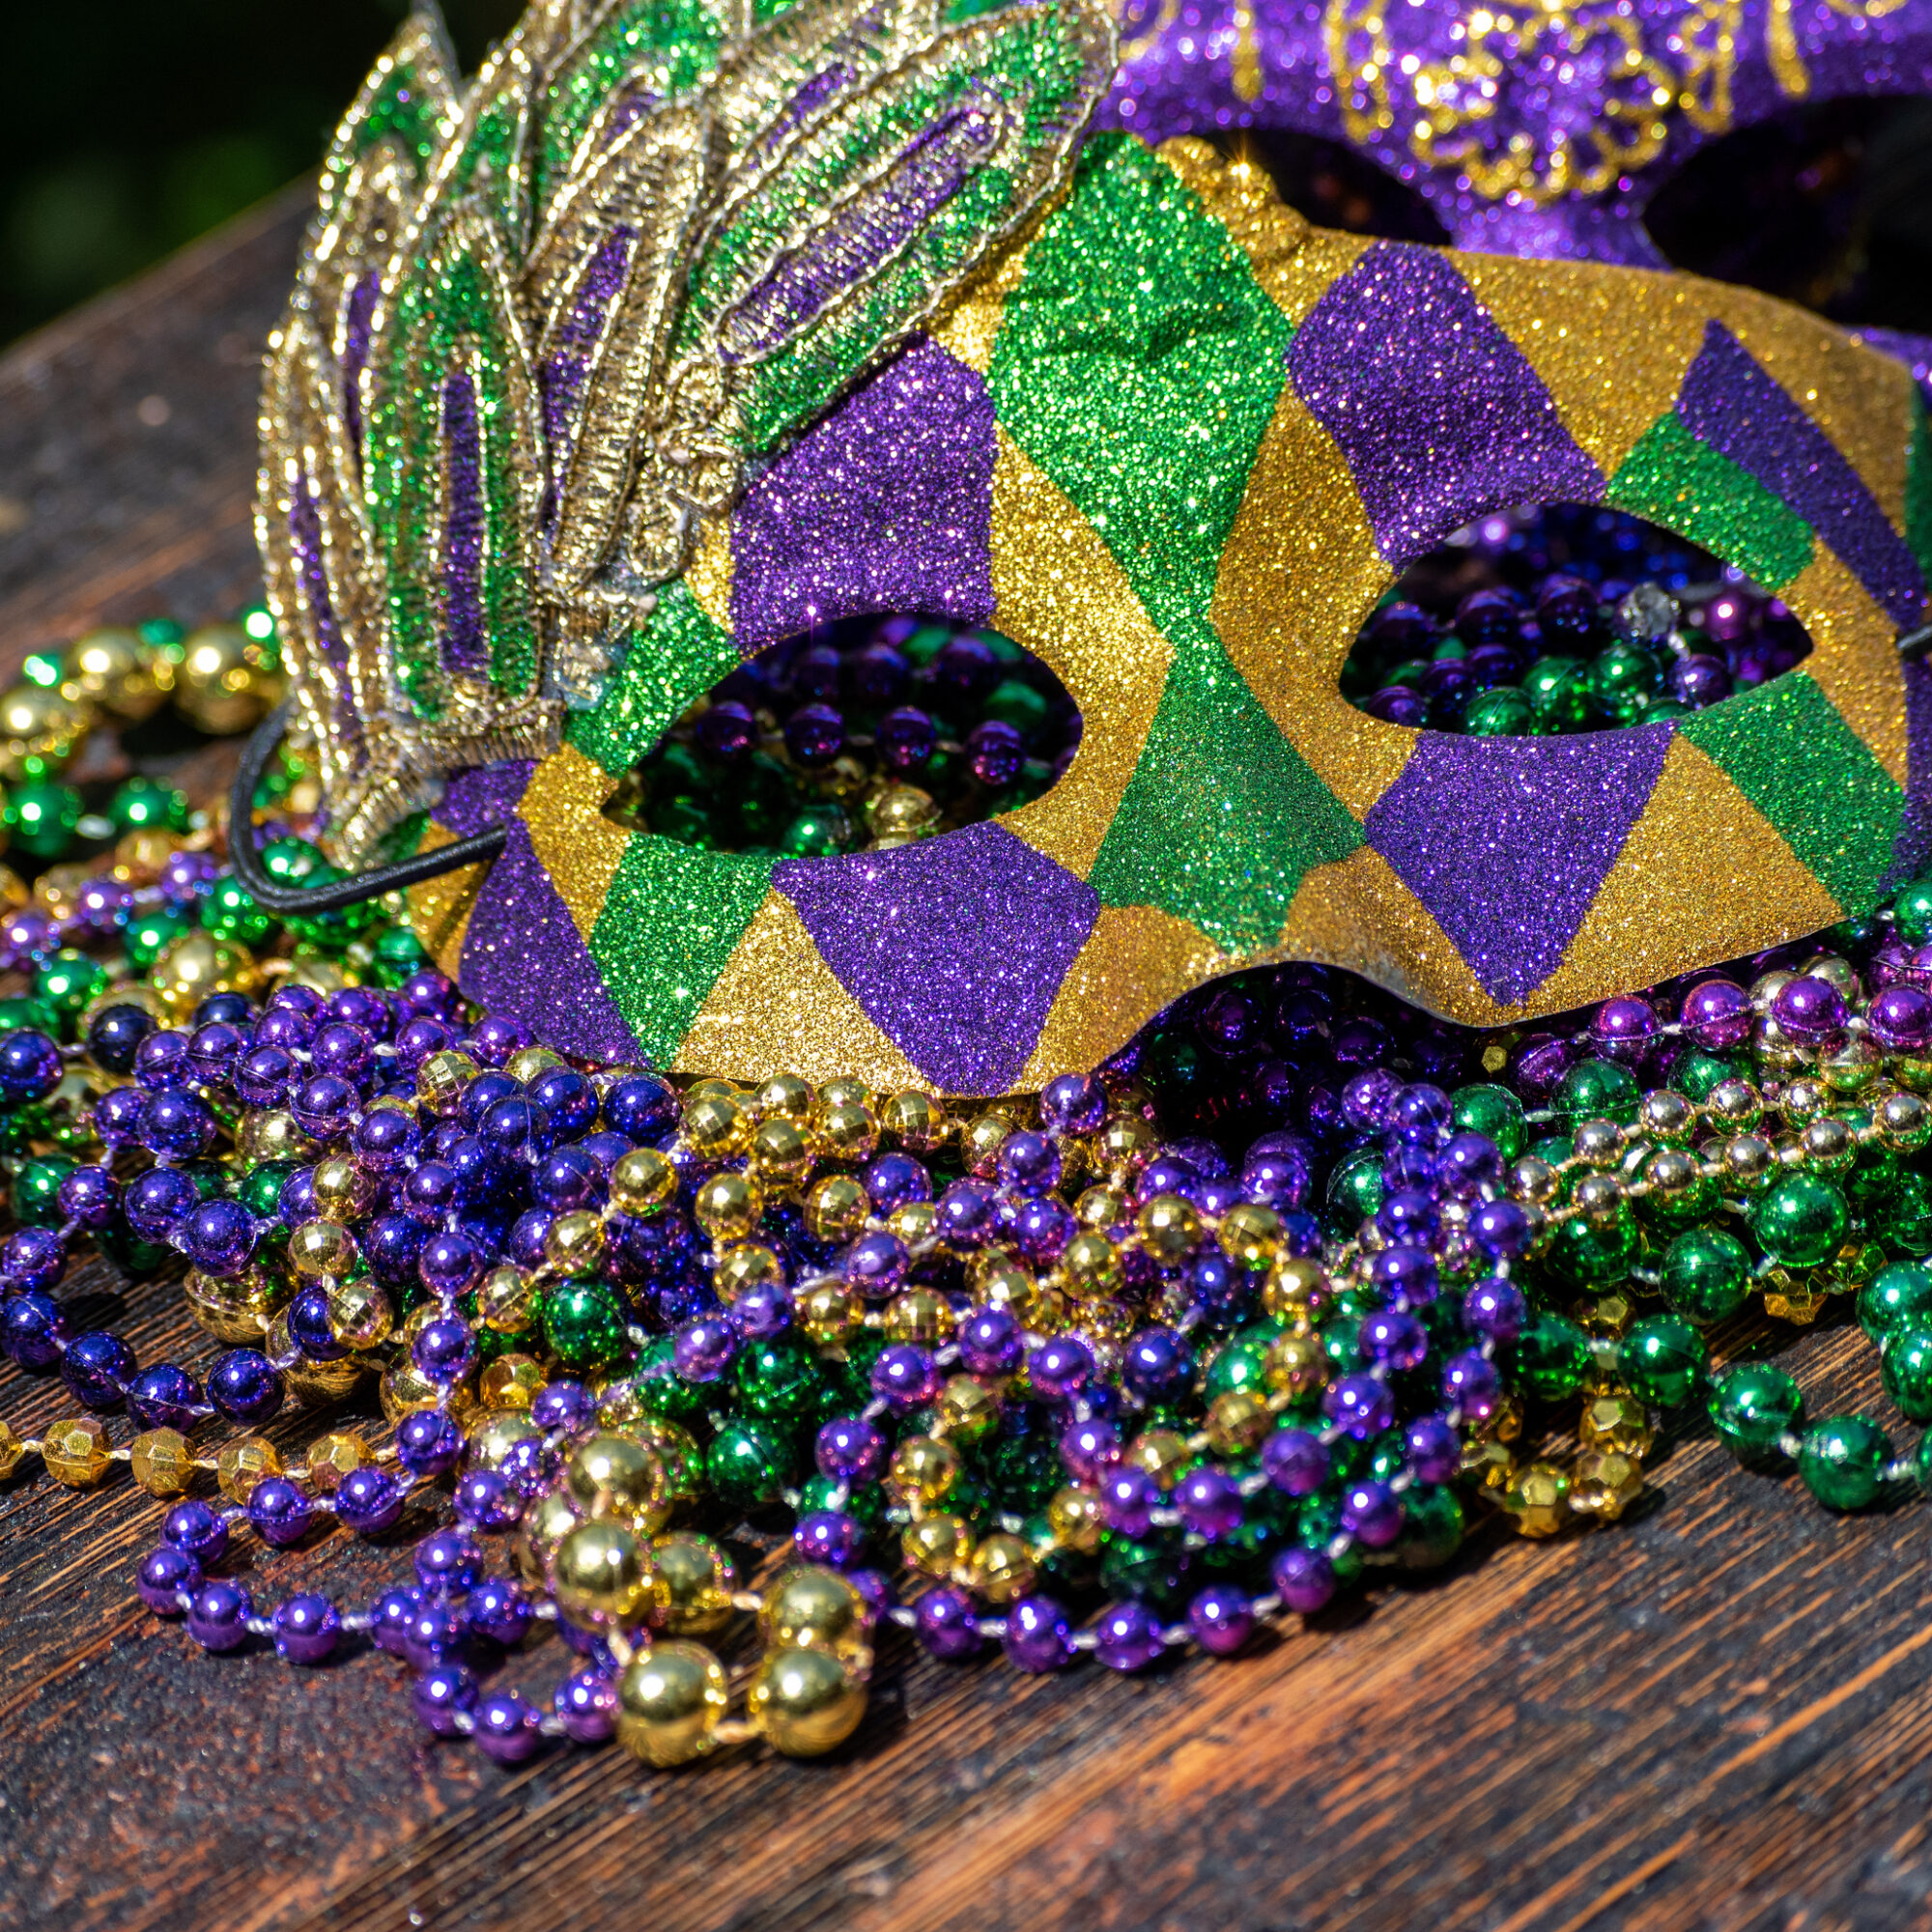 Mardi Gras mask and beads.